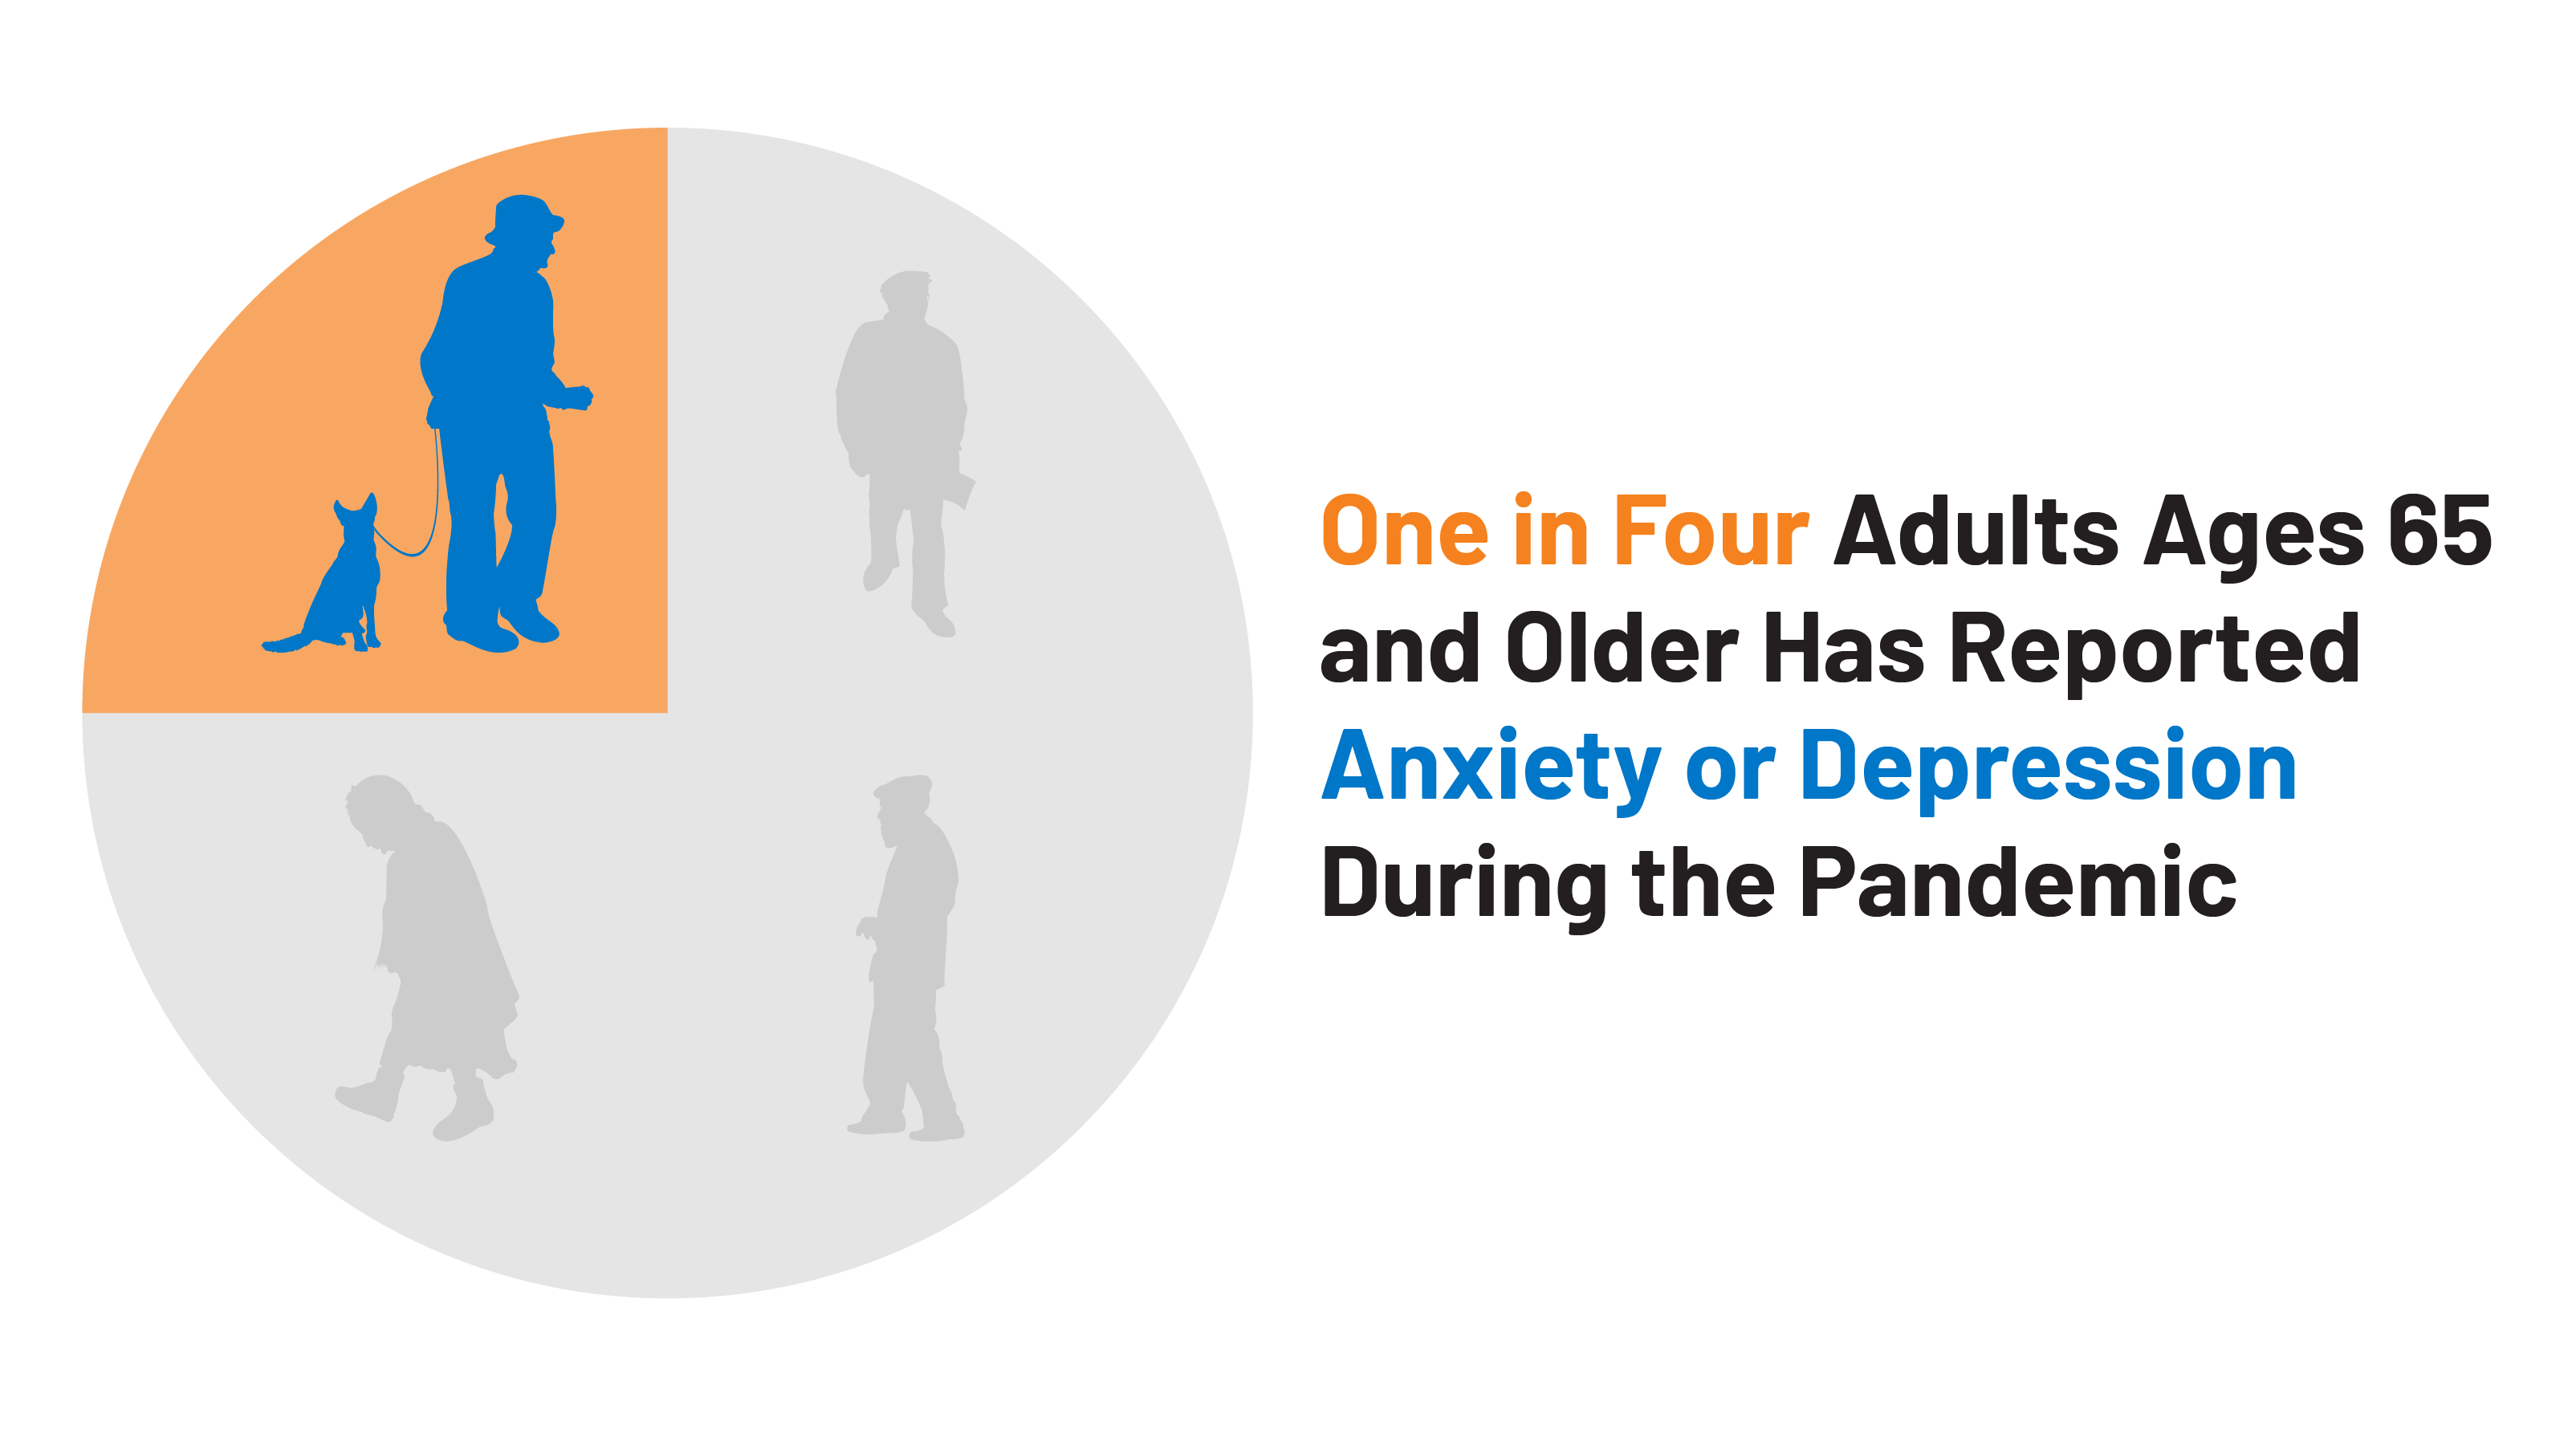 One in Four Older Adults Report Anxiety or Depression Amid the COVID-19 Pandemic